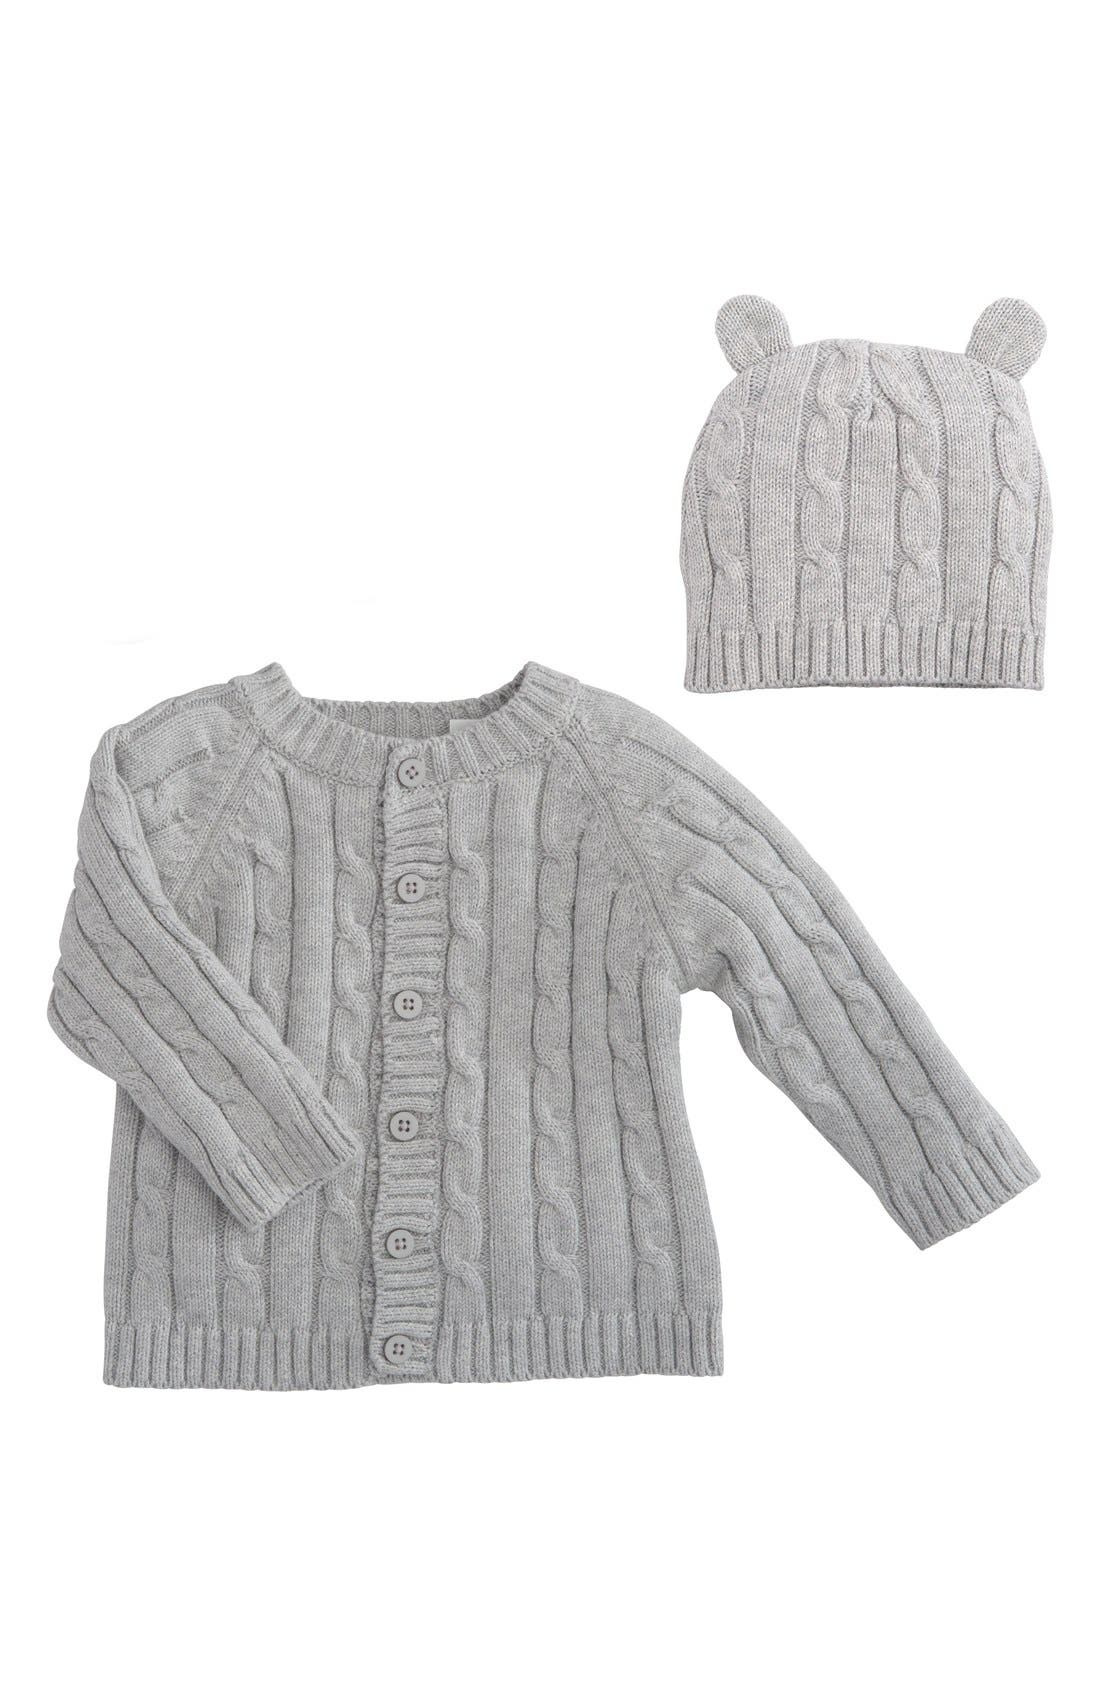 Cable Knit Sweater & Hat Set,                             Main thumbnail 1, color,                             Gray